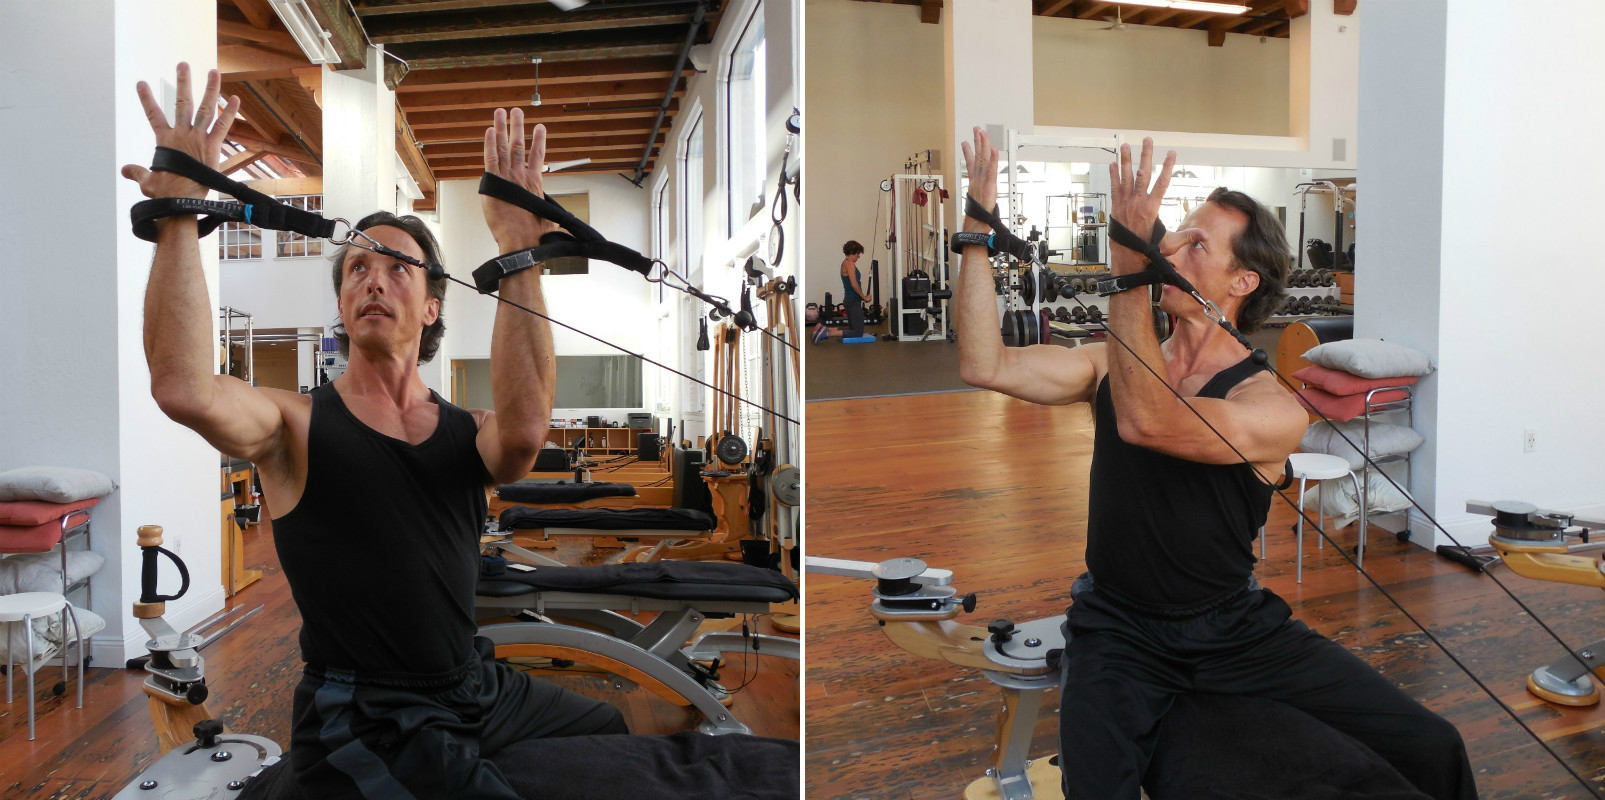 Strengthen spinal extension with strong shoulders for a cleaner backswing